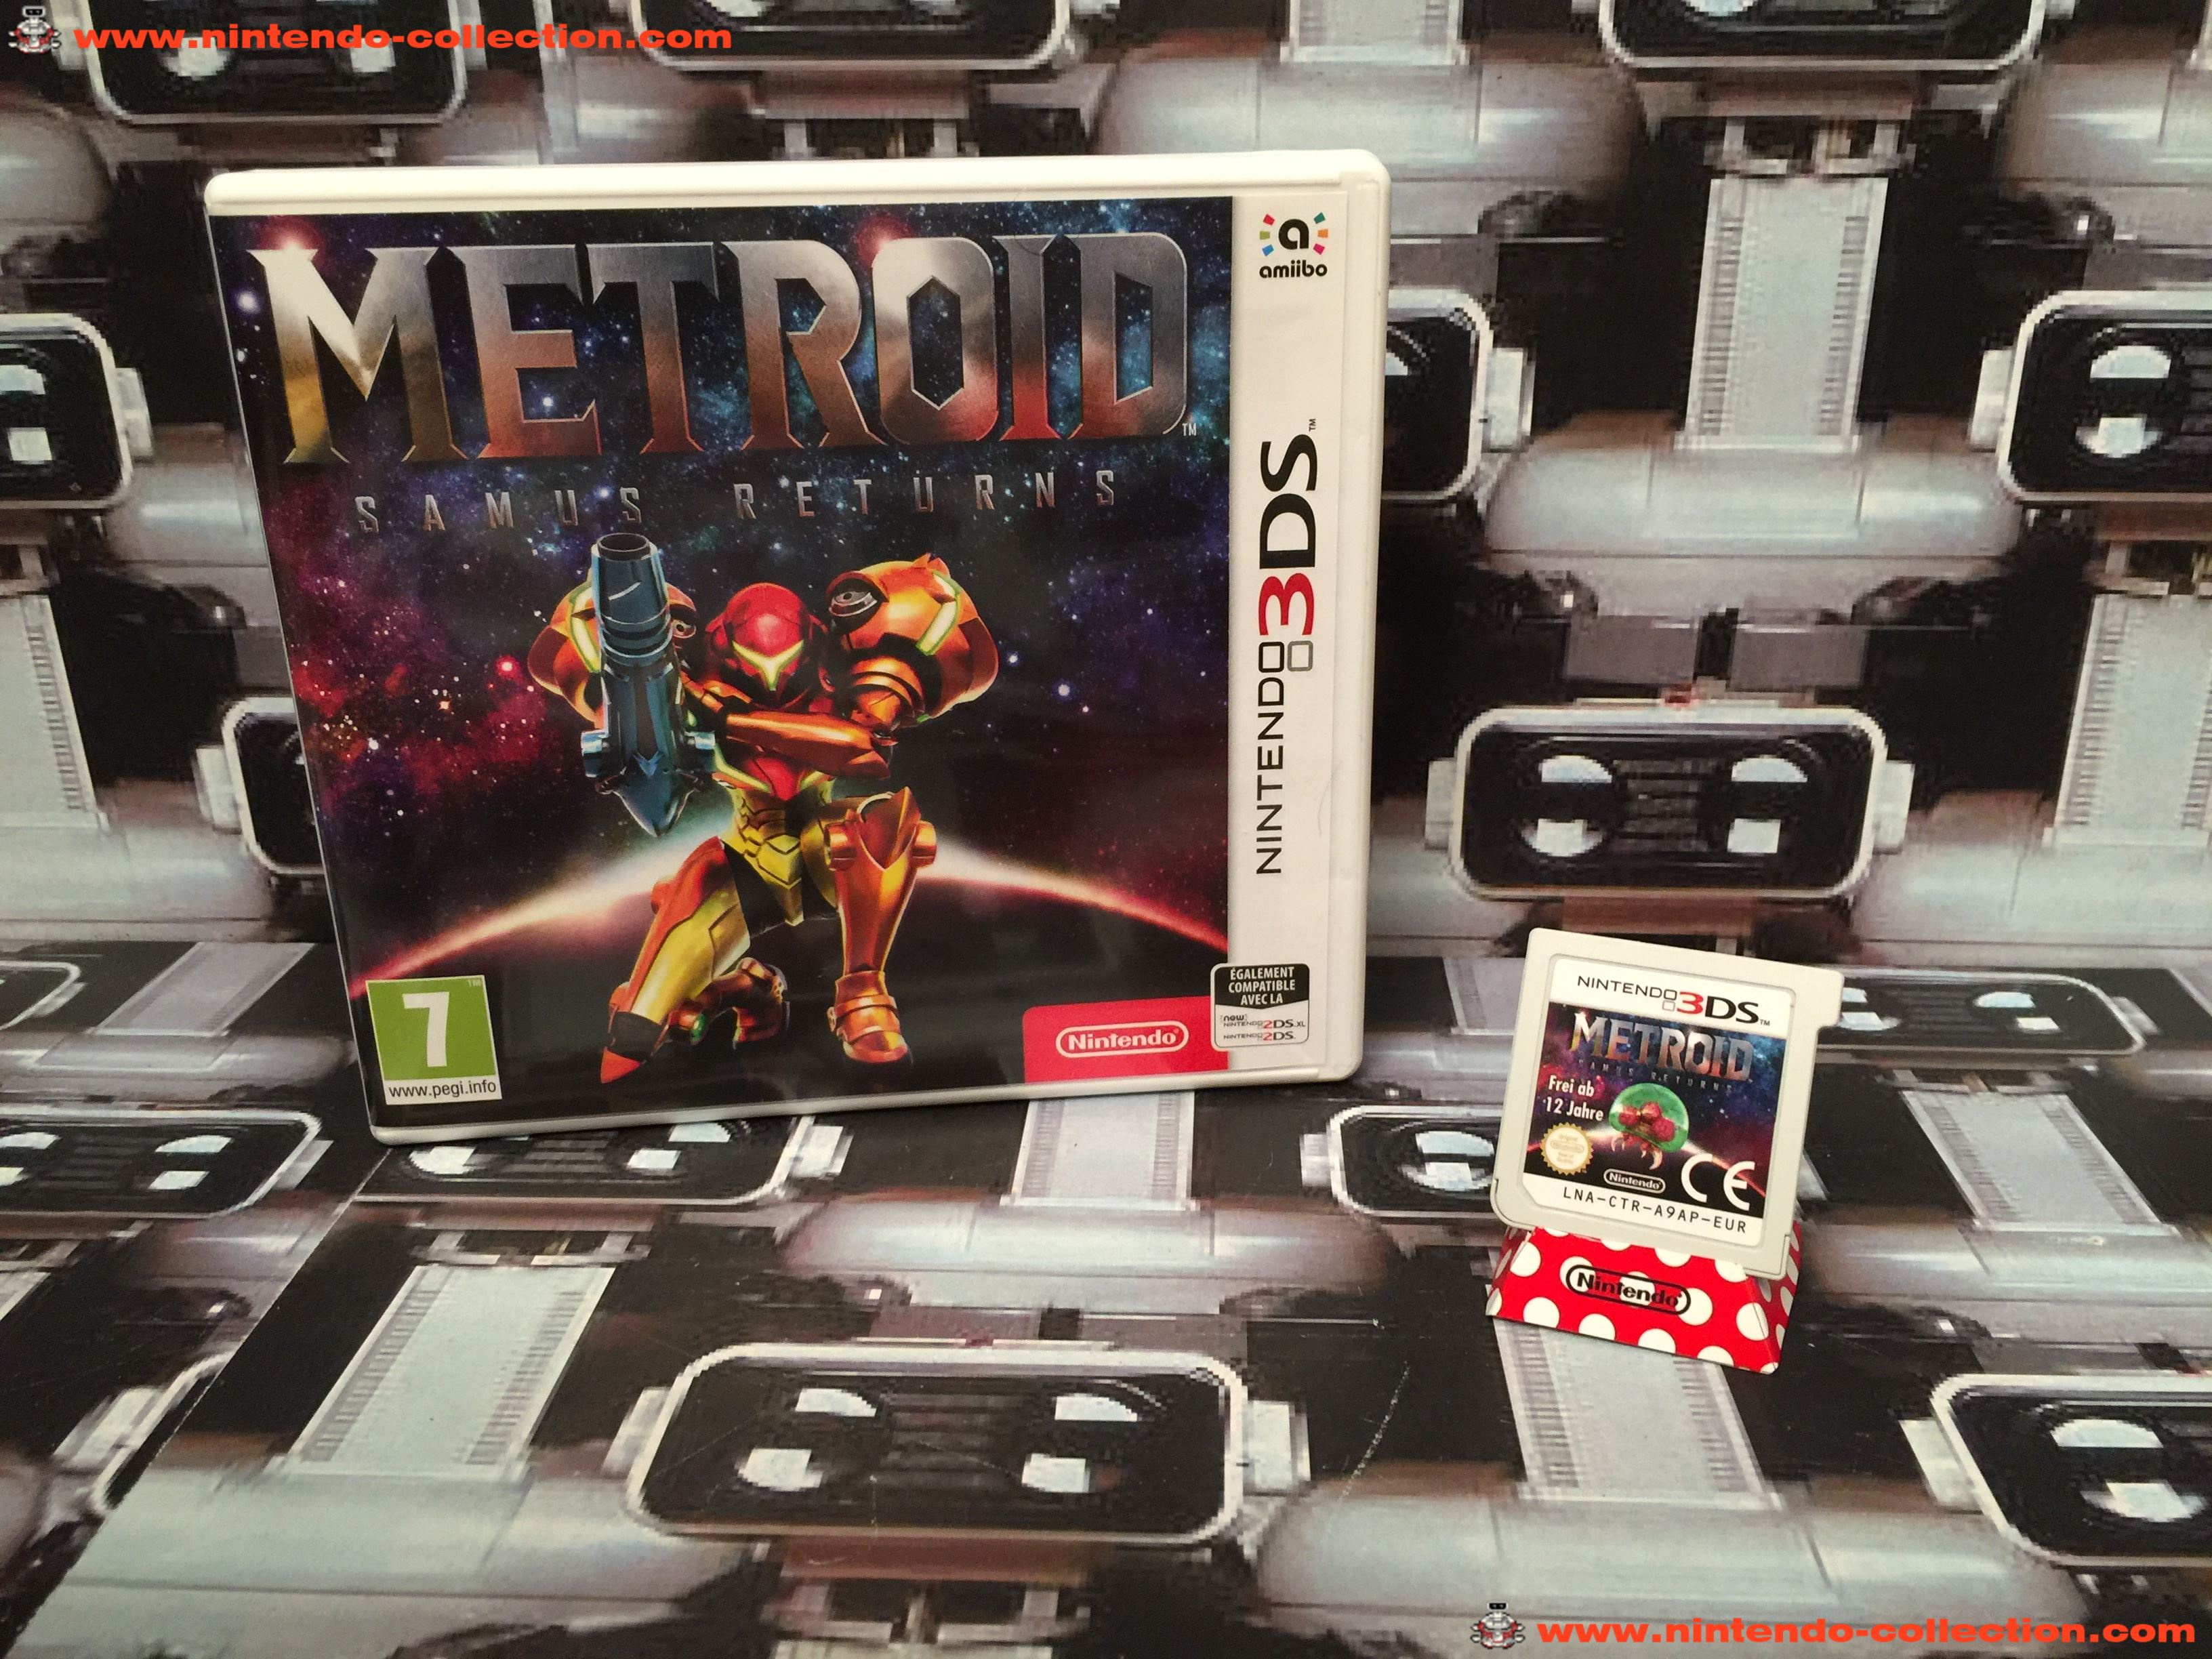 www.nintendo-collection.com - Nintendo 3DS Jeux Game Metroid Samus Return